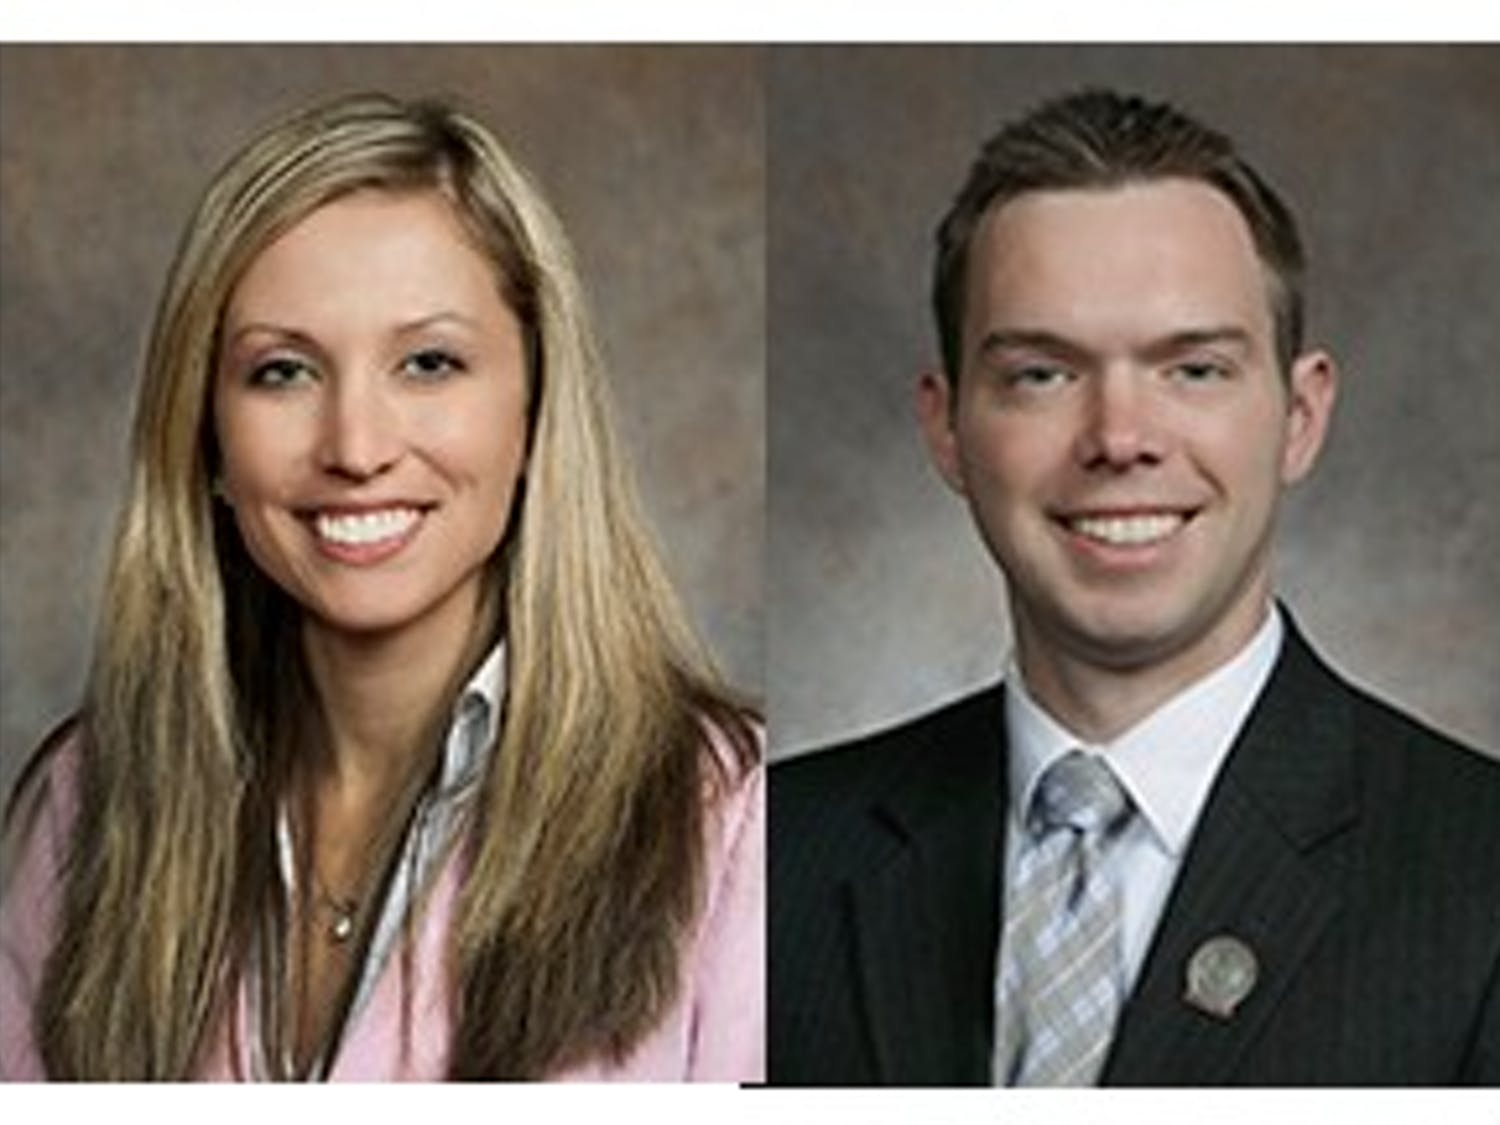 State Reps. Amanda Stuck, D-Appleton (left)and Adam Neylon, R-Pewaukee, (right) are the heads of a new millennial caucus created to work across the aisle on modern issues.